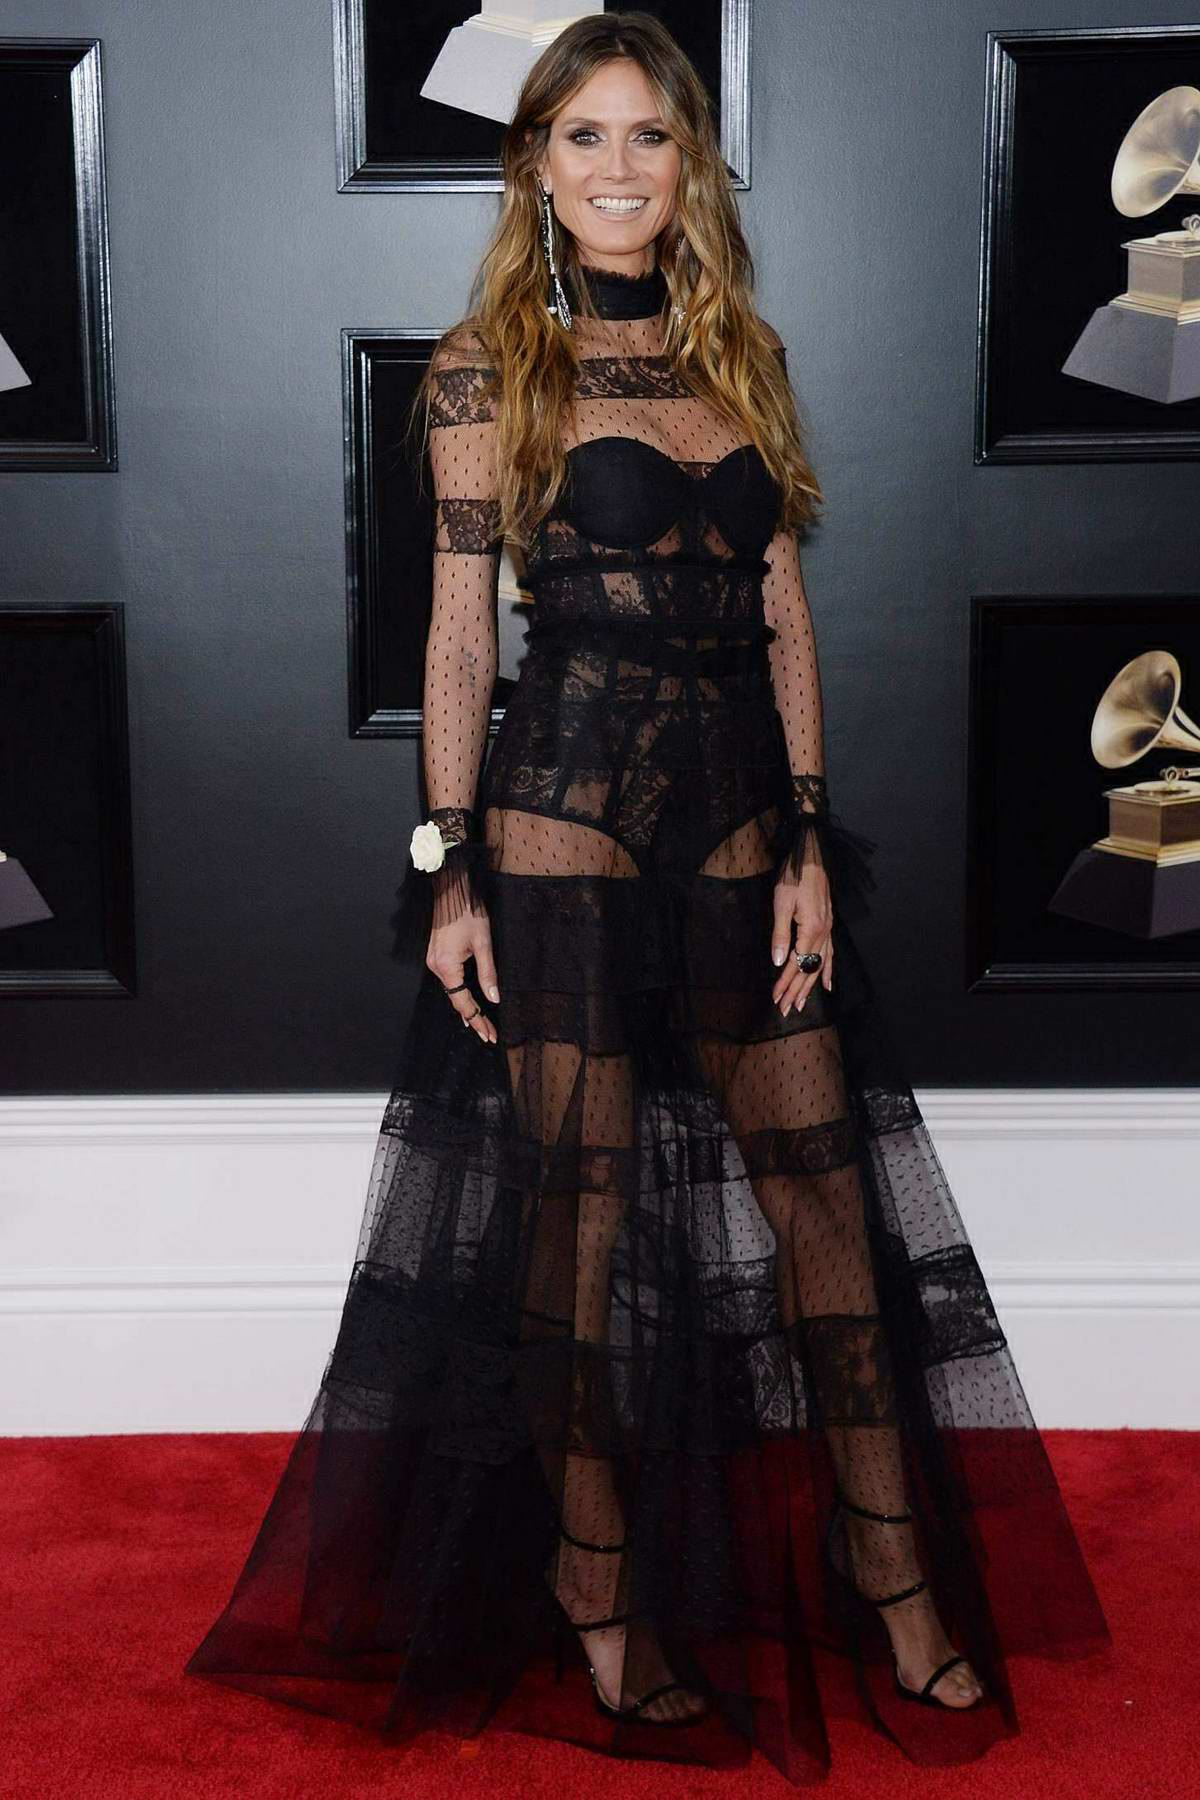 Heidi Klum attends the 60th Annual Grammy Awards at Madison Square Garden in New York